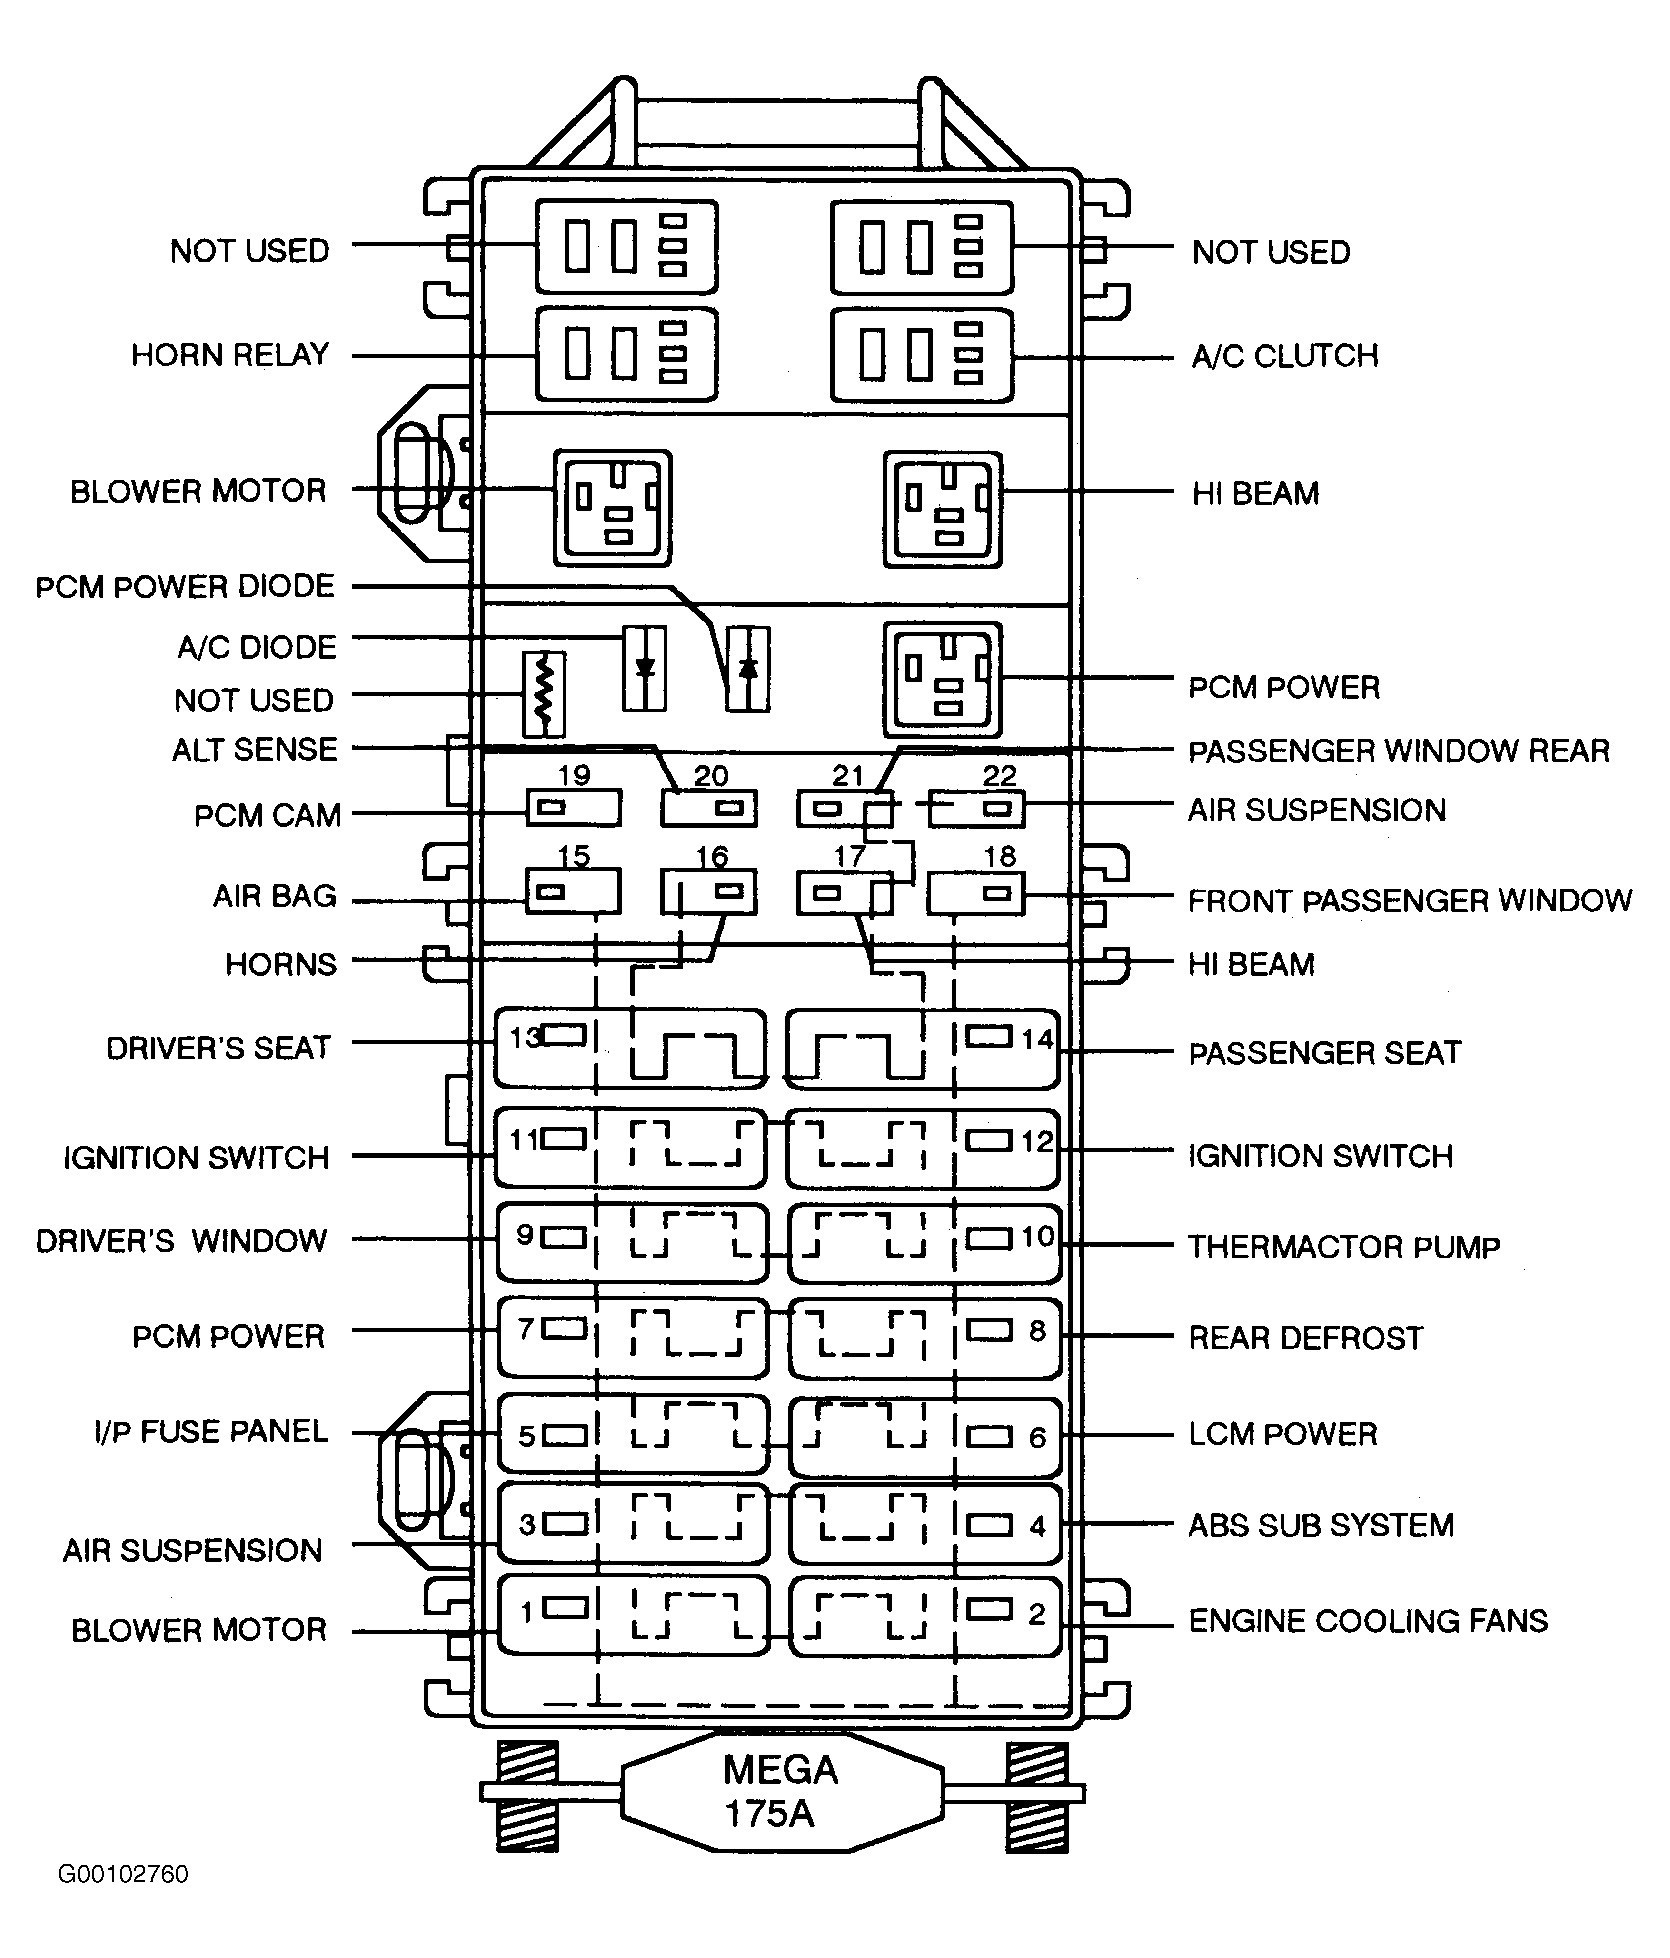 DIAGRAM] Fuse Box Diagram 1997 Lincoln Town Car FULL Version HD Quality Town  Car - STRUCTUREDSETTLEME.NIBERMA.FRstructuredsettleme.niberma.fr